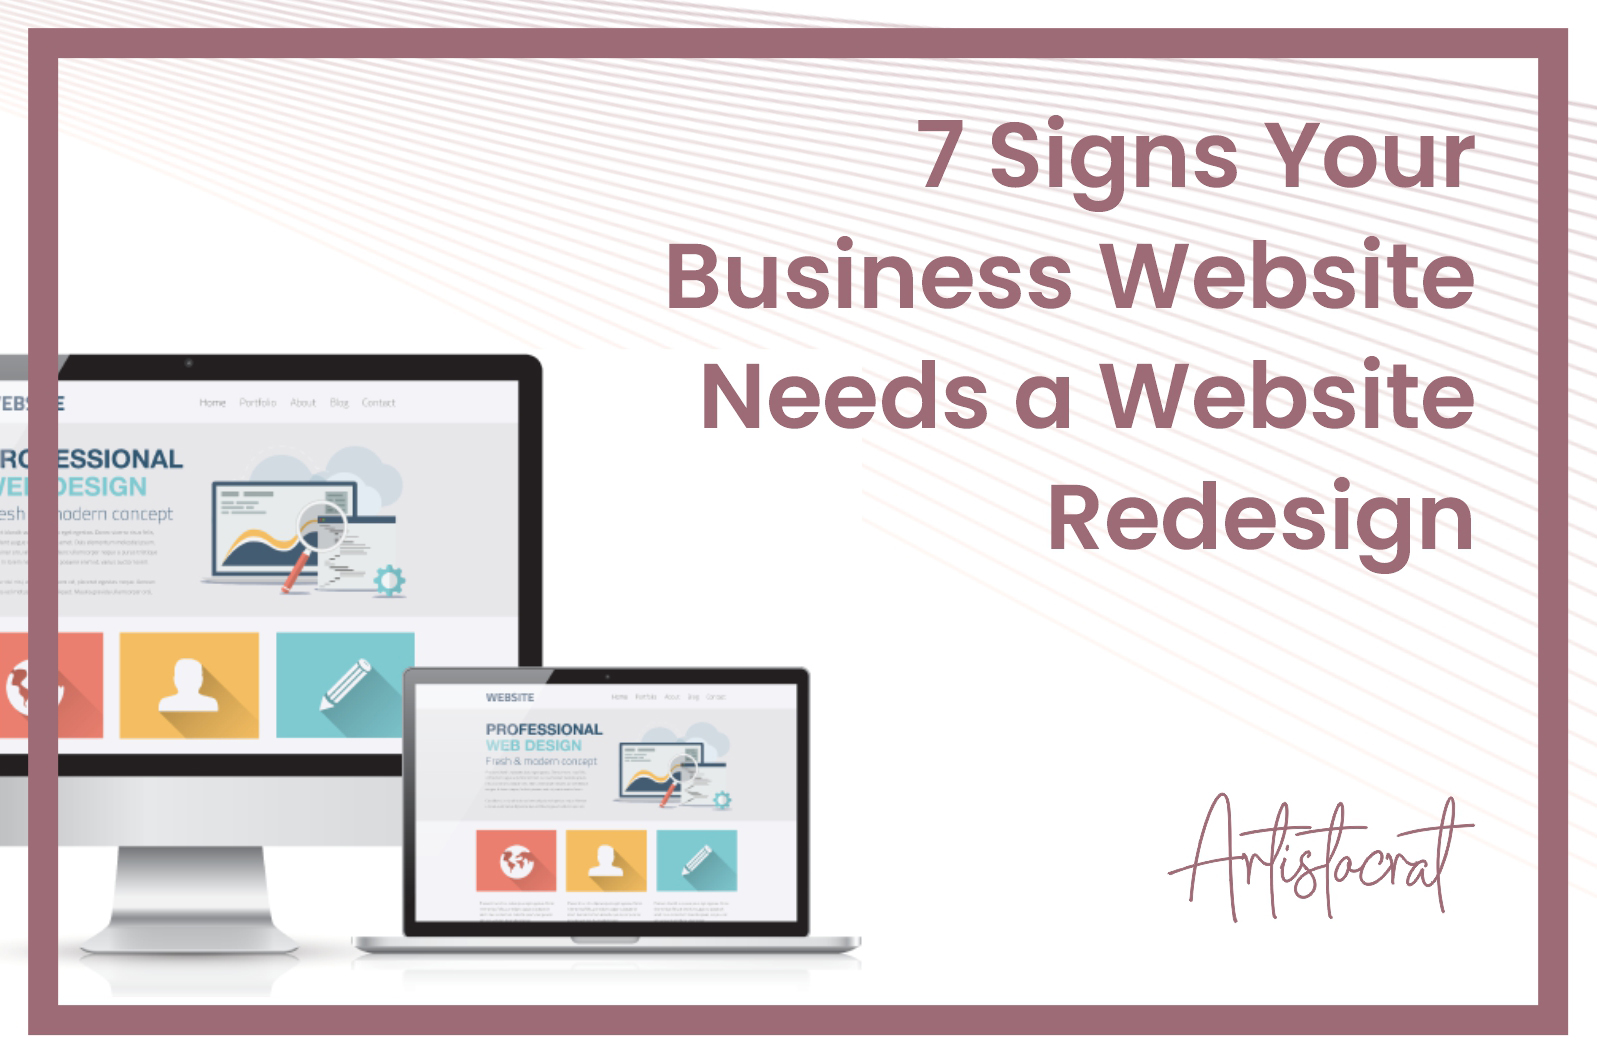 7-Signs-Your-Business-Website-Need-Website-Redesign